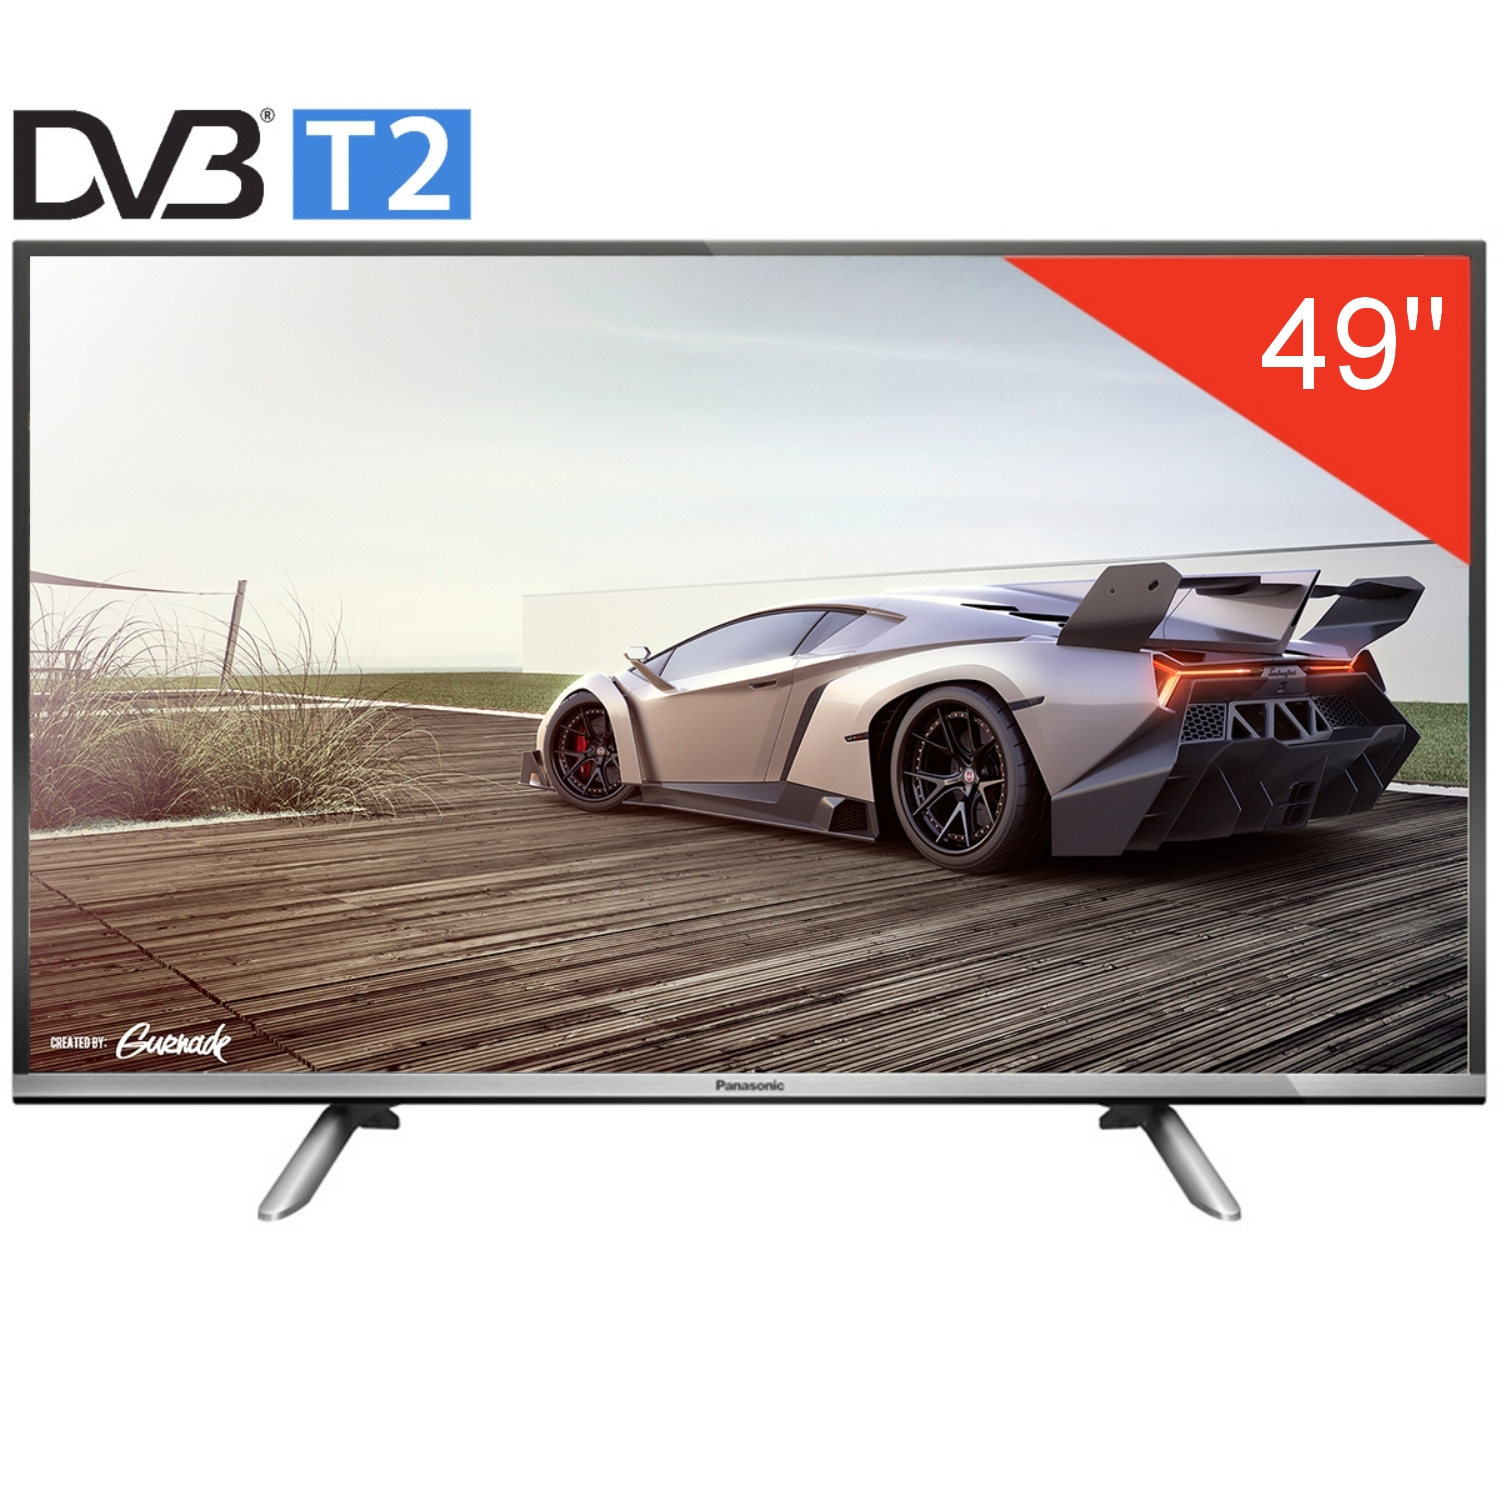 Tivi LED 49 inch Full HD Panasonic 49D410V